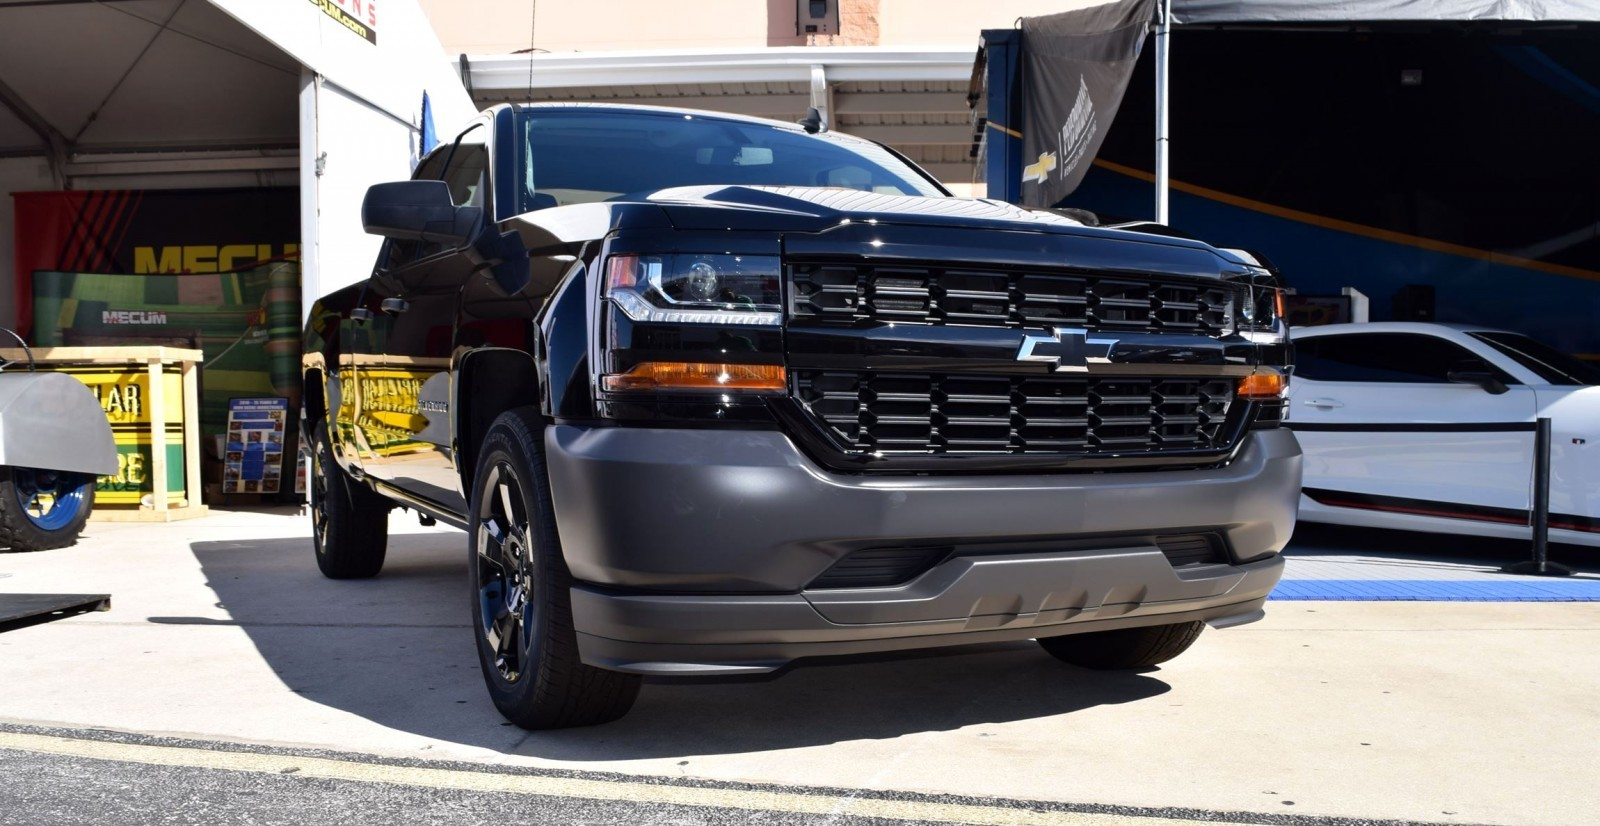 Chevy Silverado Rally Edition >> 2016 Chevrolet SILVERADO Black Out Edition is $35k and Dripping Wet Gloss!